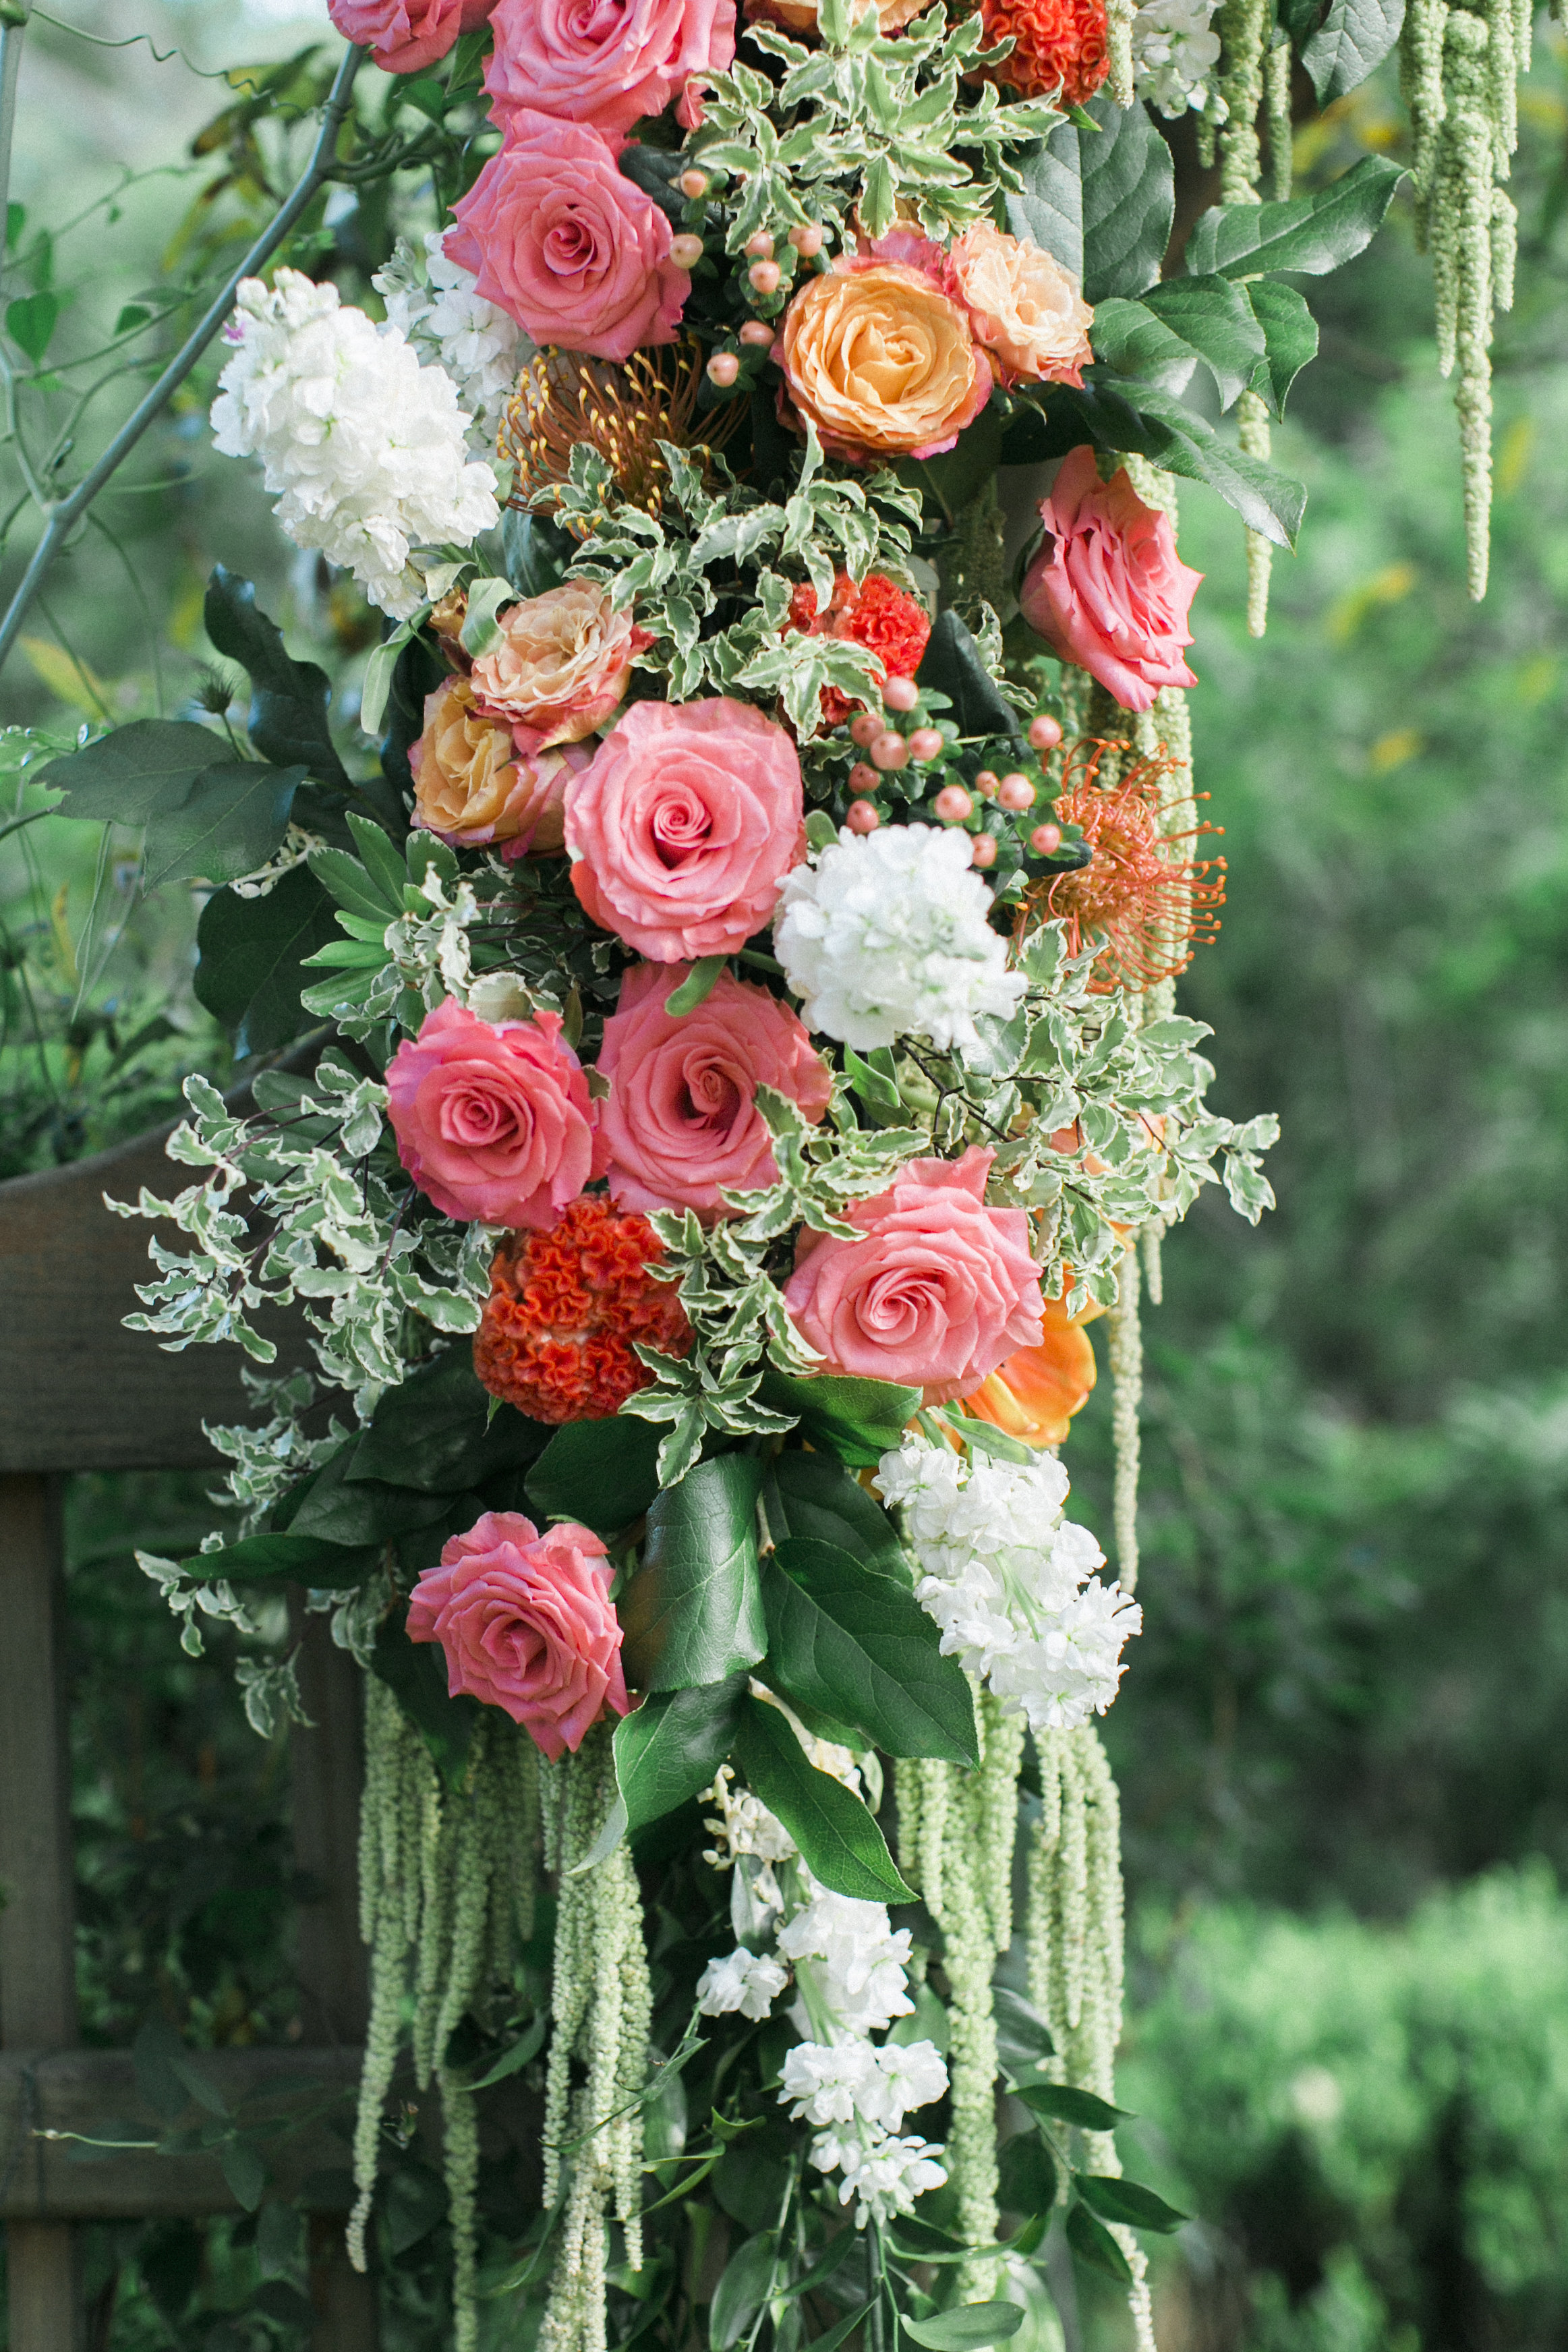 tuckahoe plantation archway flowers richmond virginia coral wedding florist